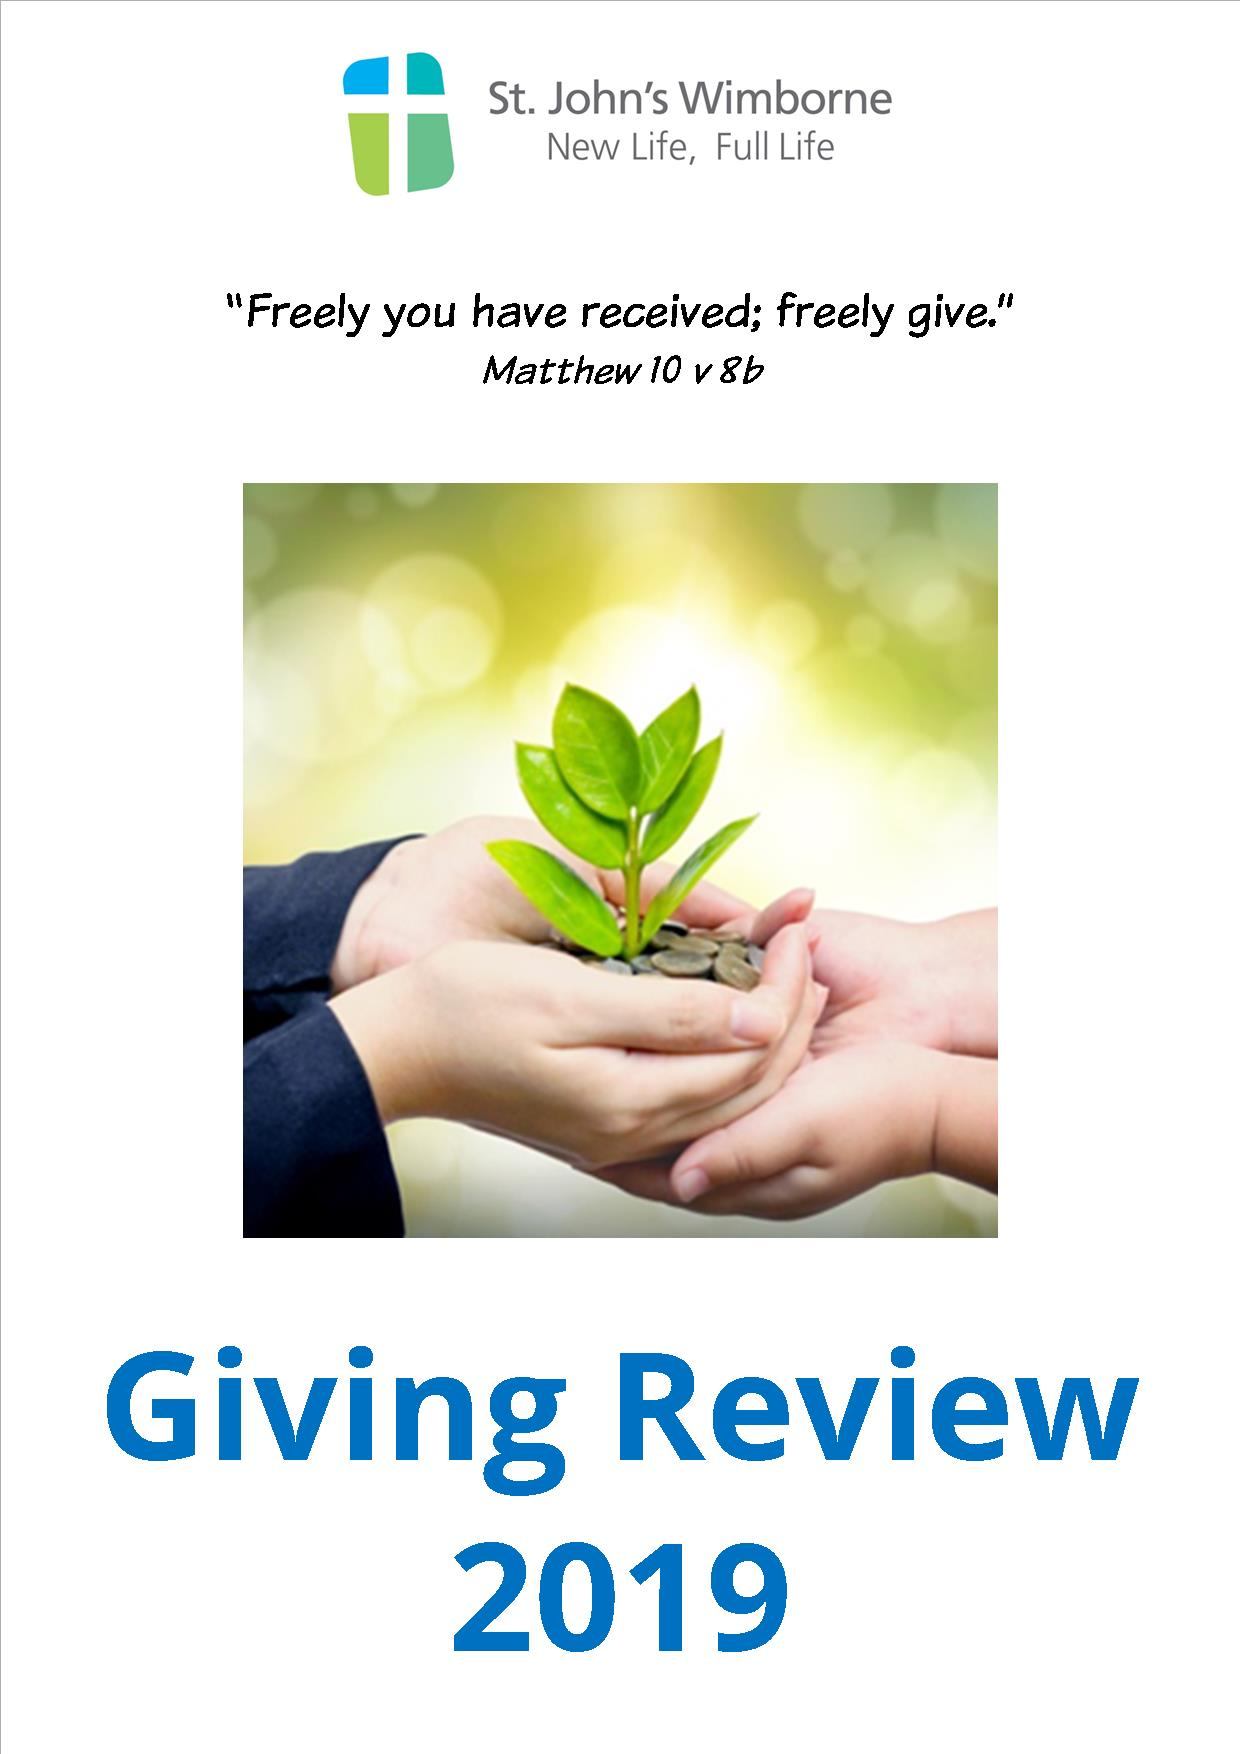 Giving Review 2019 pdf icon